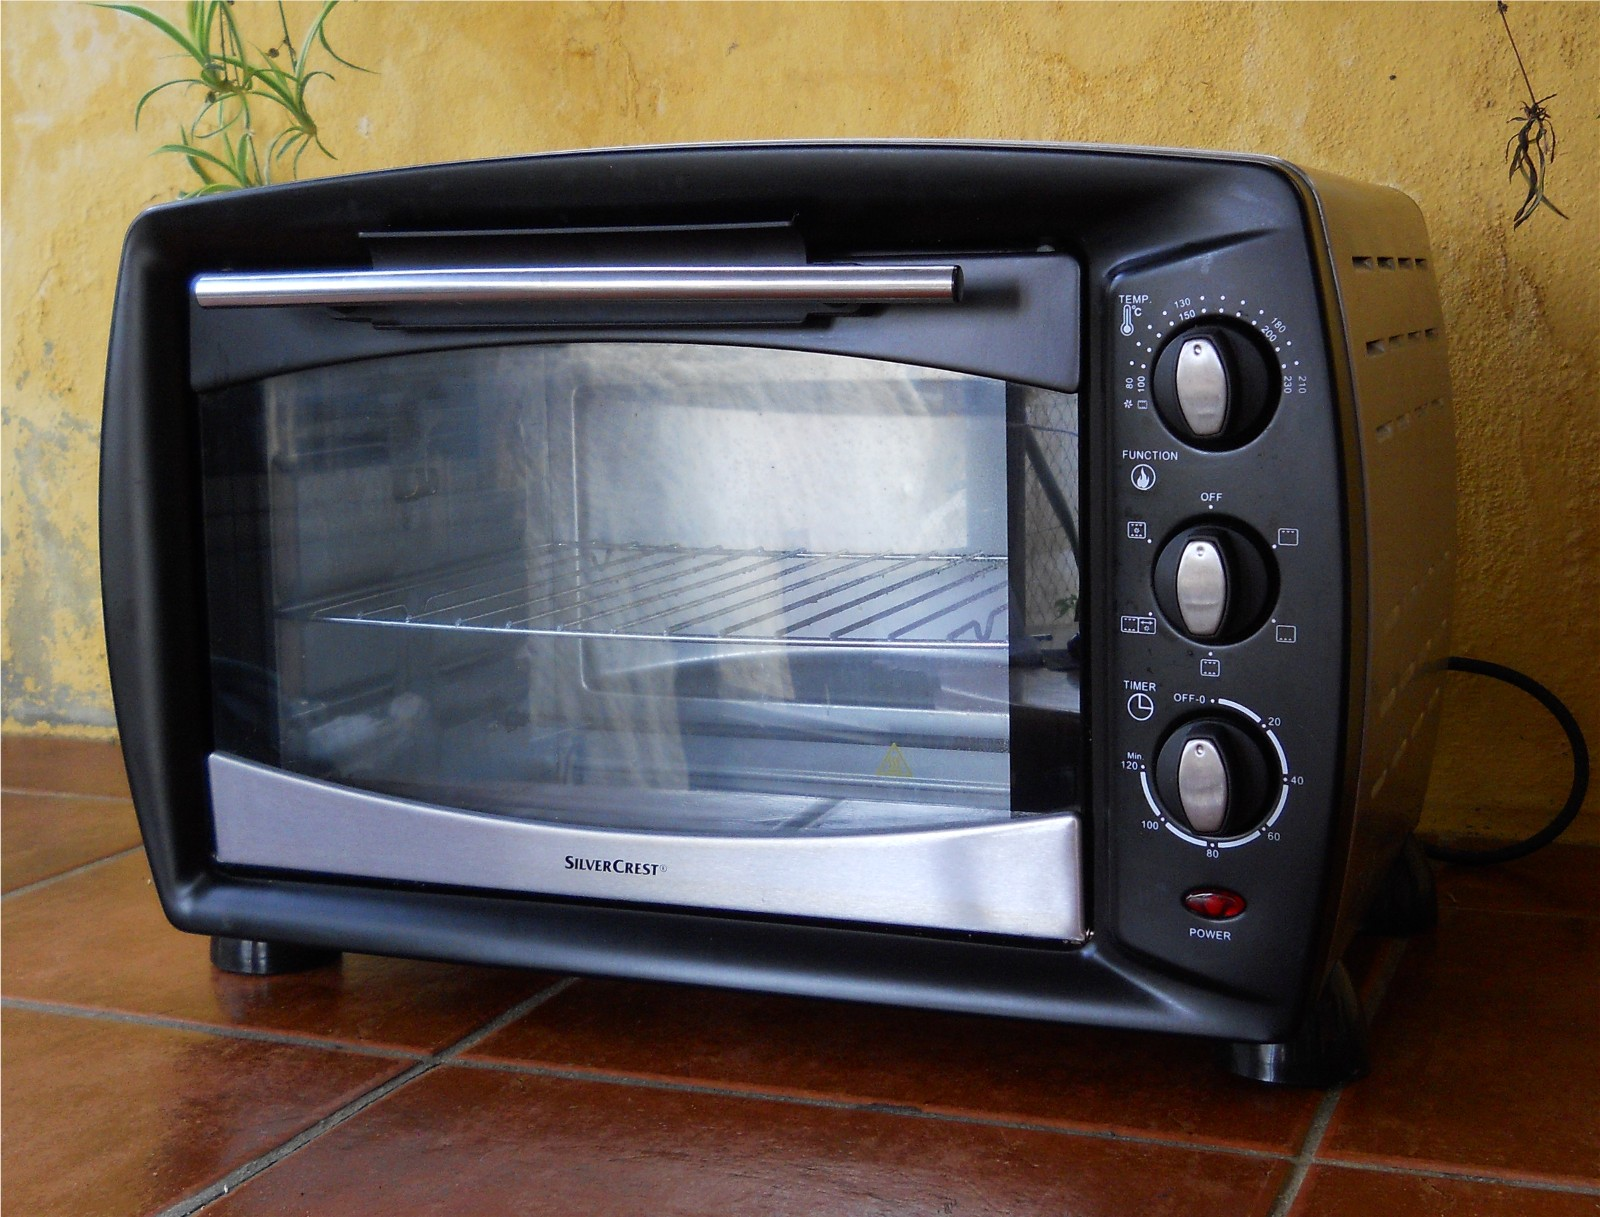 Beautiful Electric Countertop Oven - Silverscrest-